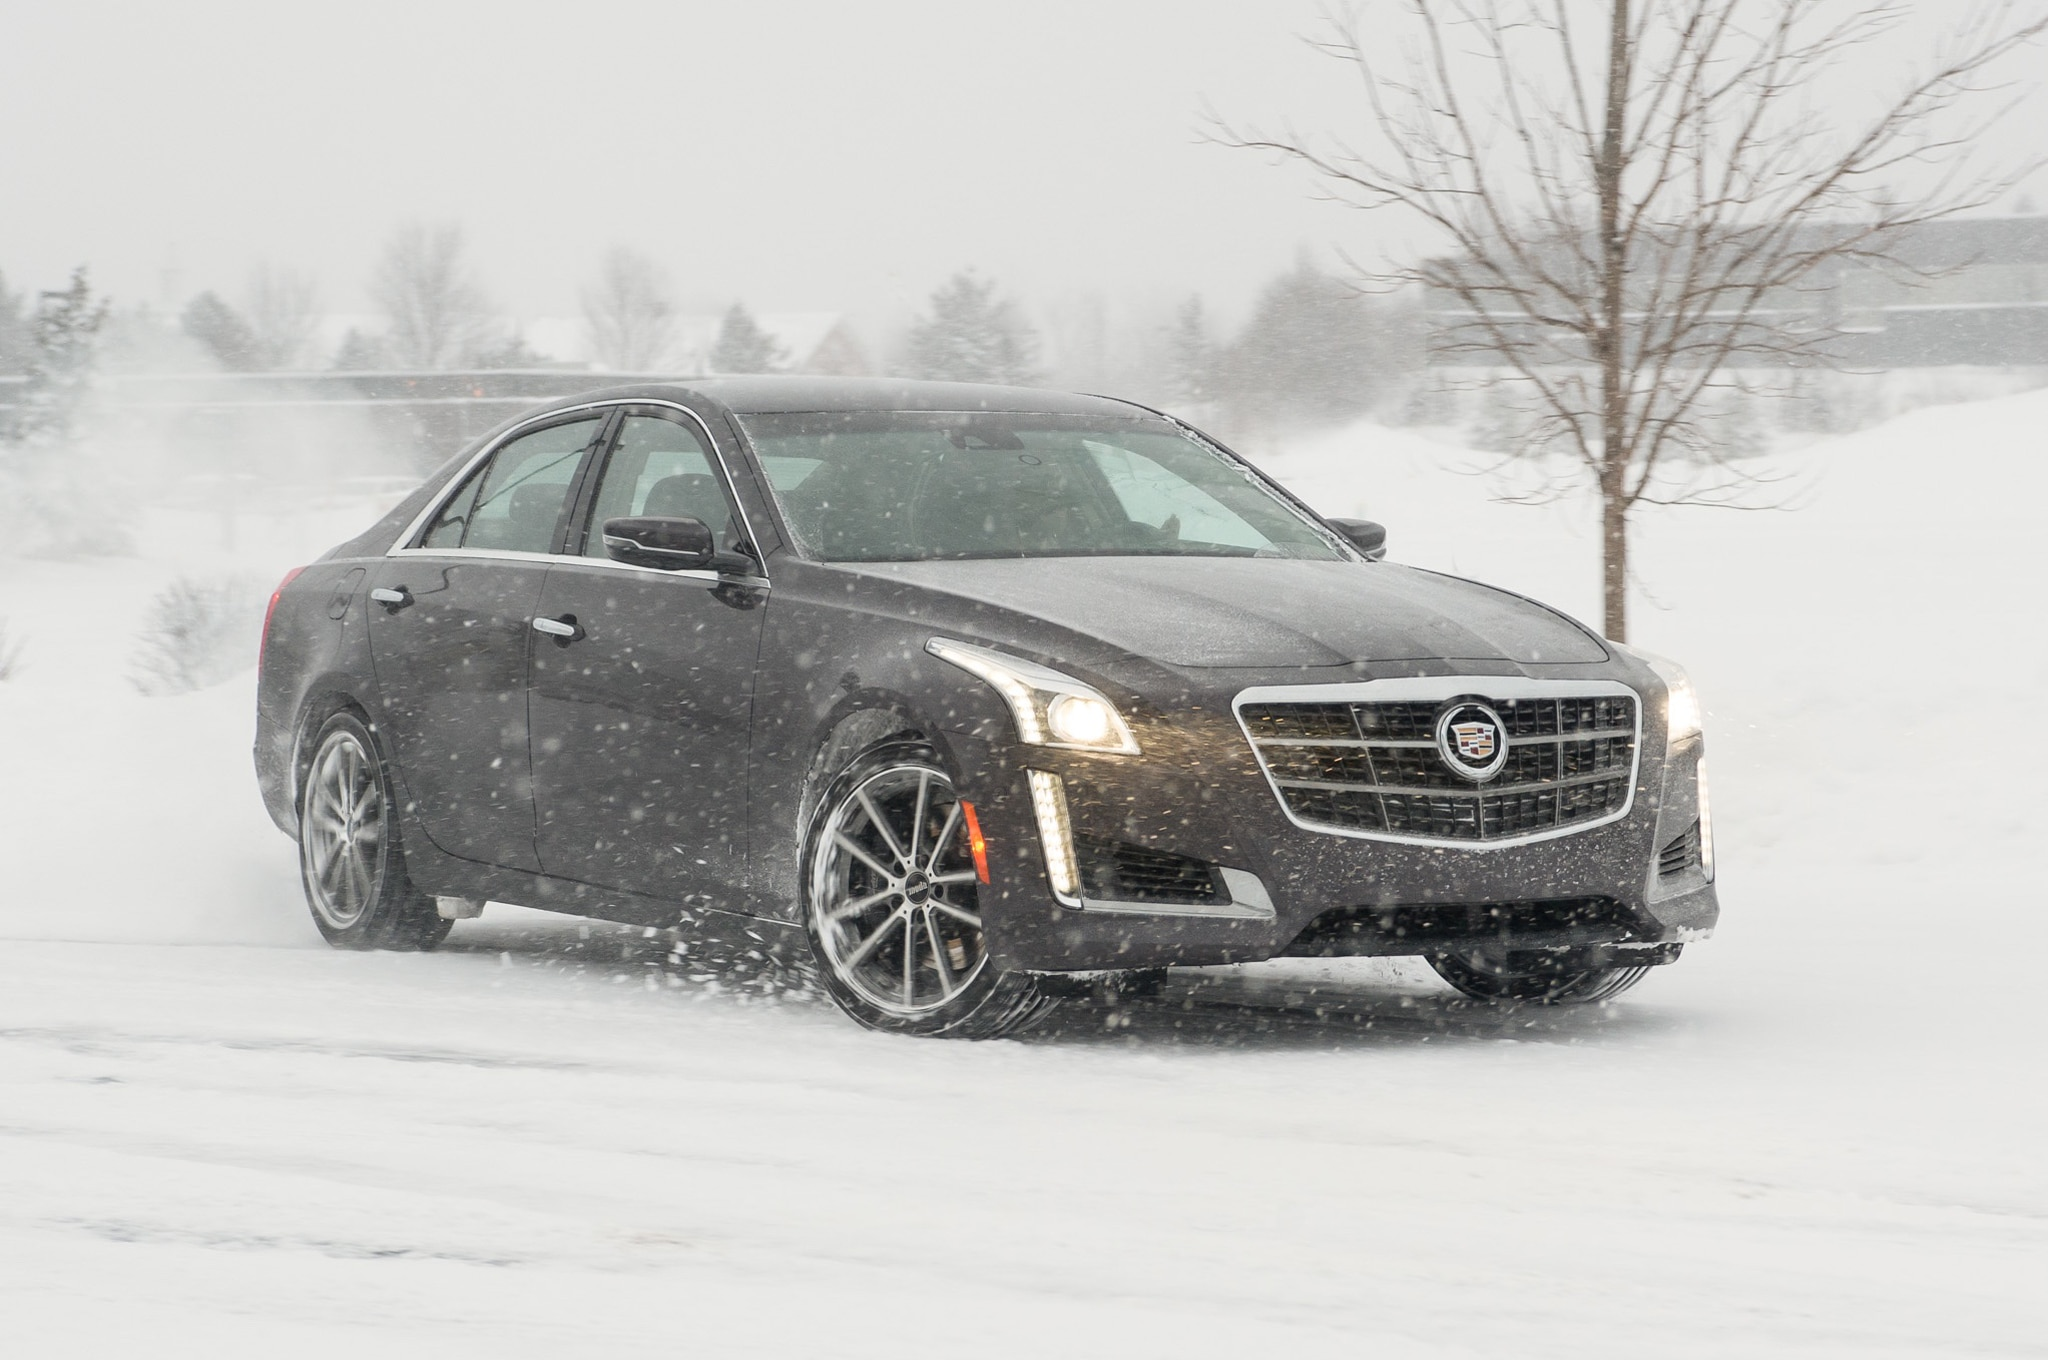 2014 cadillac cts vsport the shortcomings 35 advertisement to skip 1 35